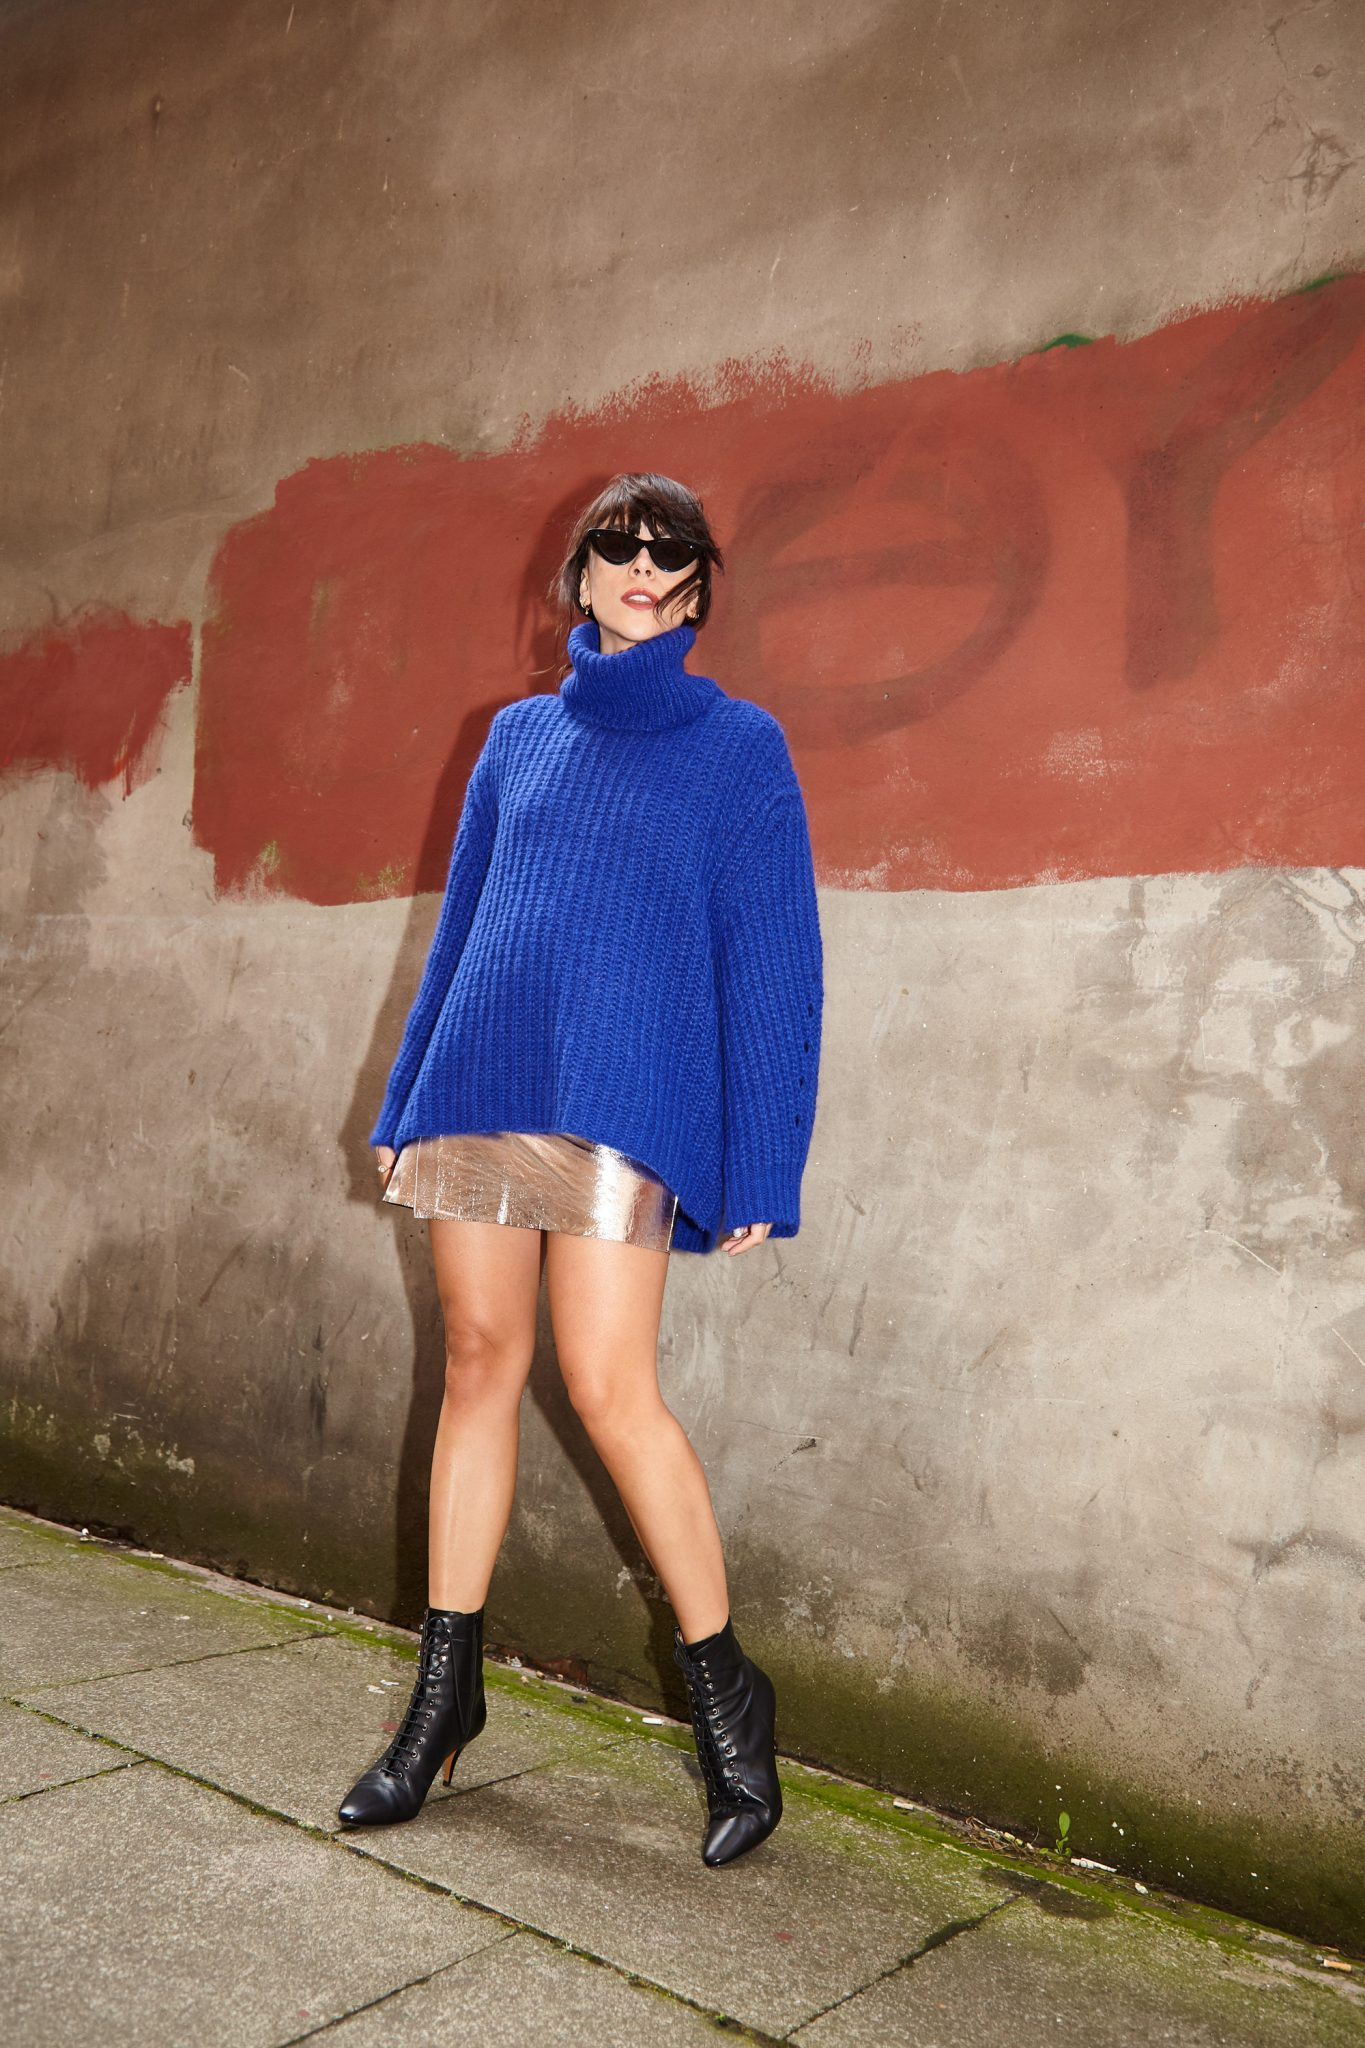 HOW TO DRESS UP KNITWEAR